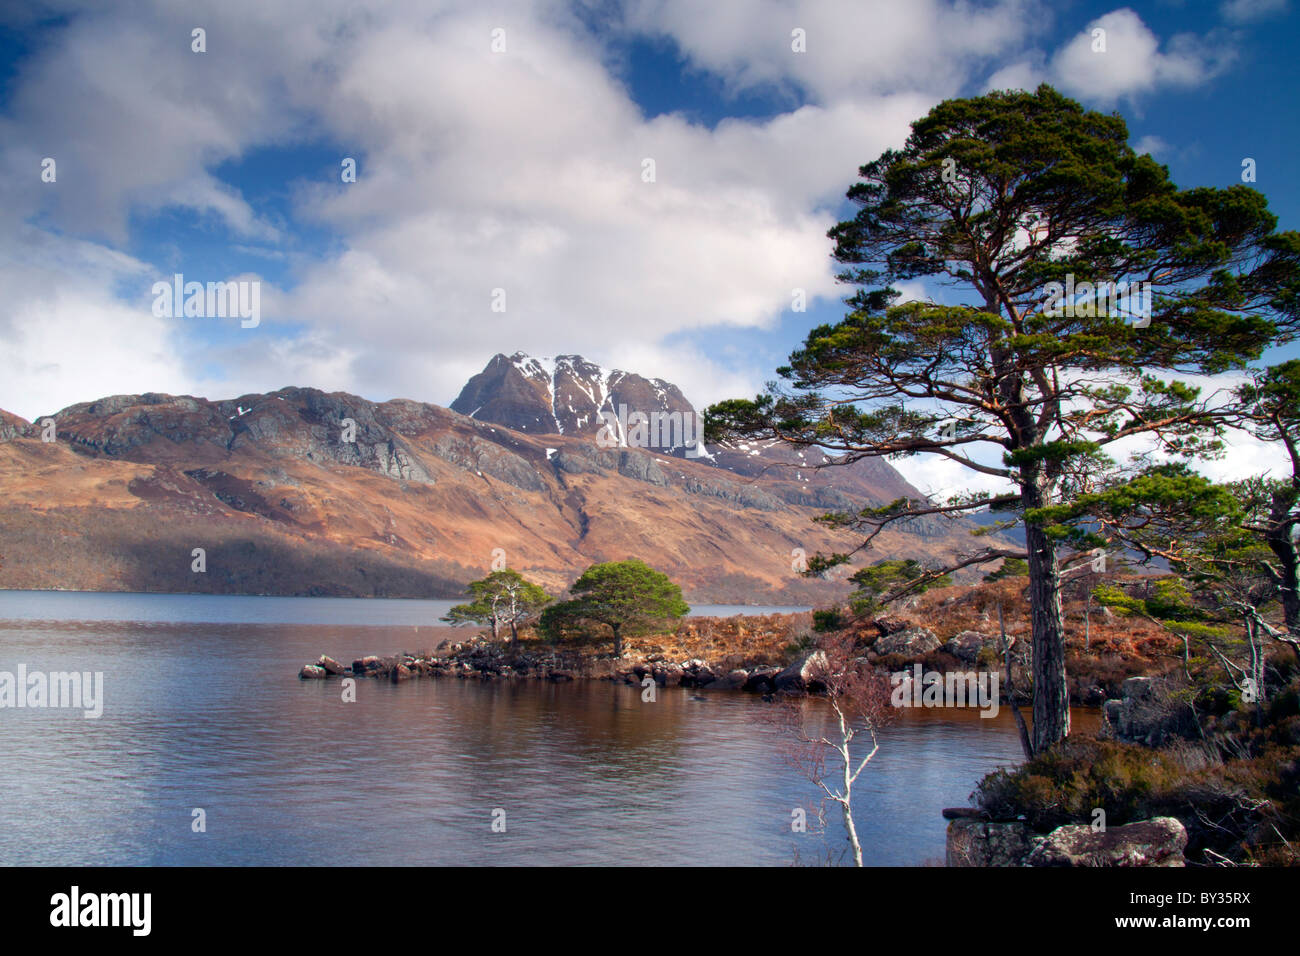 A view of Slioch from the shores of Loch Maree in Wester Ross, Scotland, UK. - Stock Image